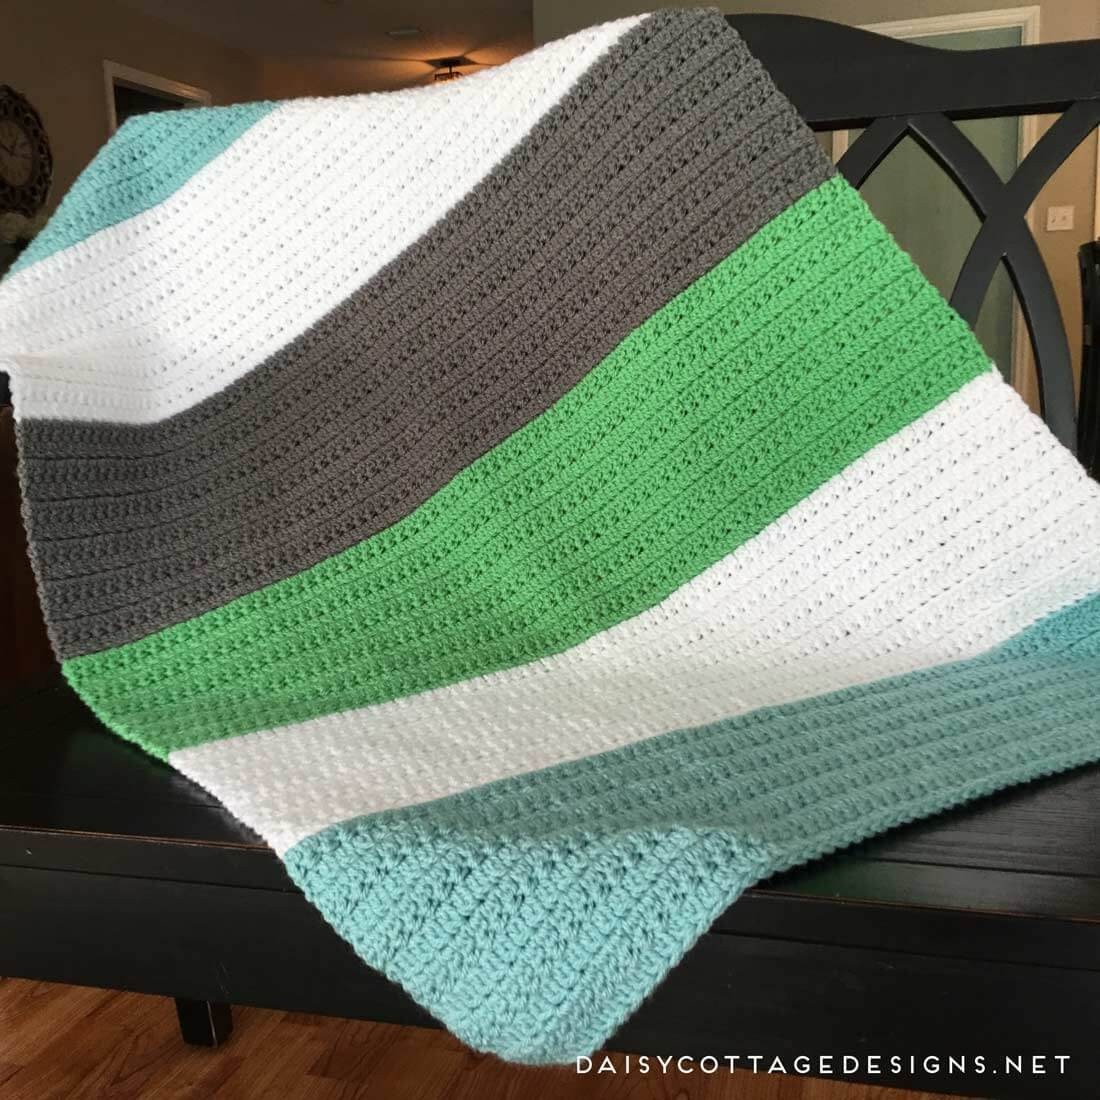 Awesome Crochet Baby Blanket From Daisy Cottage Designs Crochet Baby Blanket Video Of Marvelous 40 Pics Crochet Baby Blanket Video